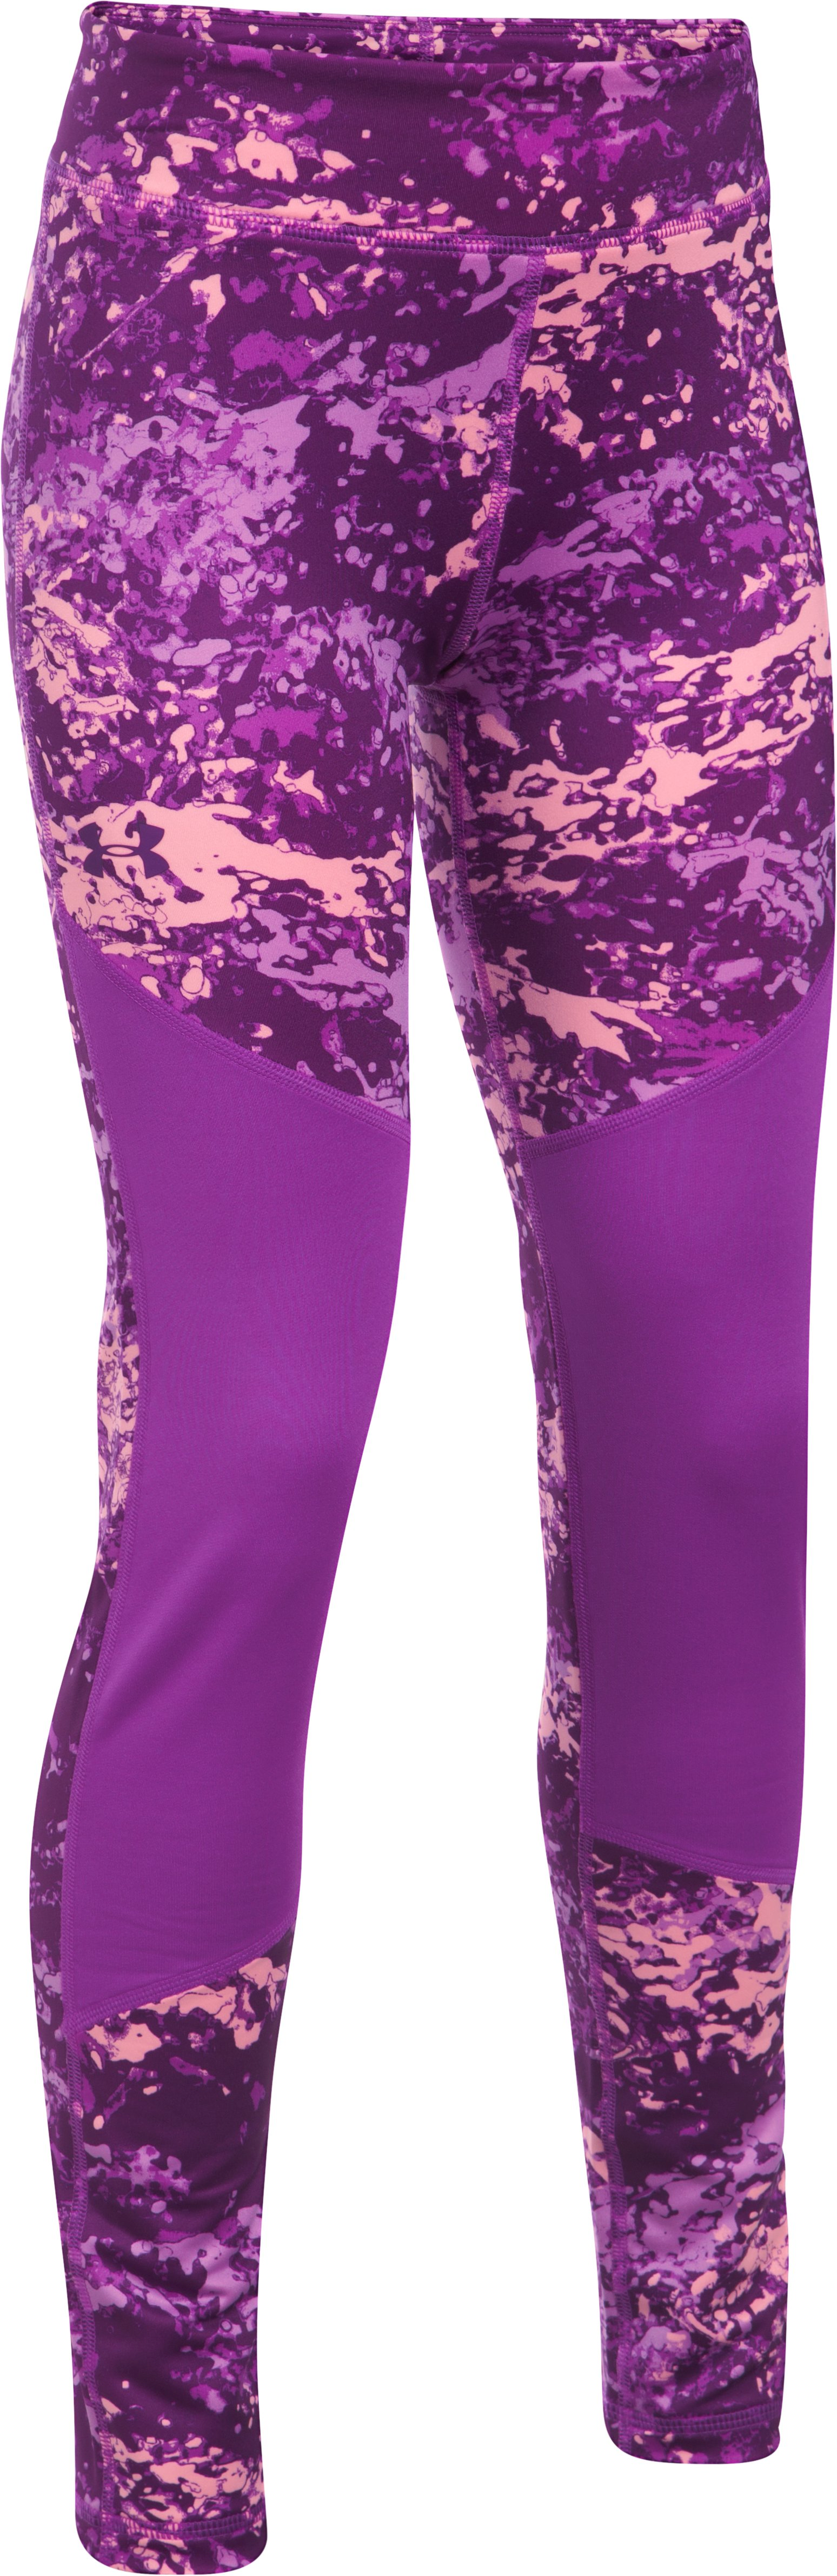 Girls' ColdGear® Printed Leggings, PURPLE RAVE